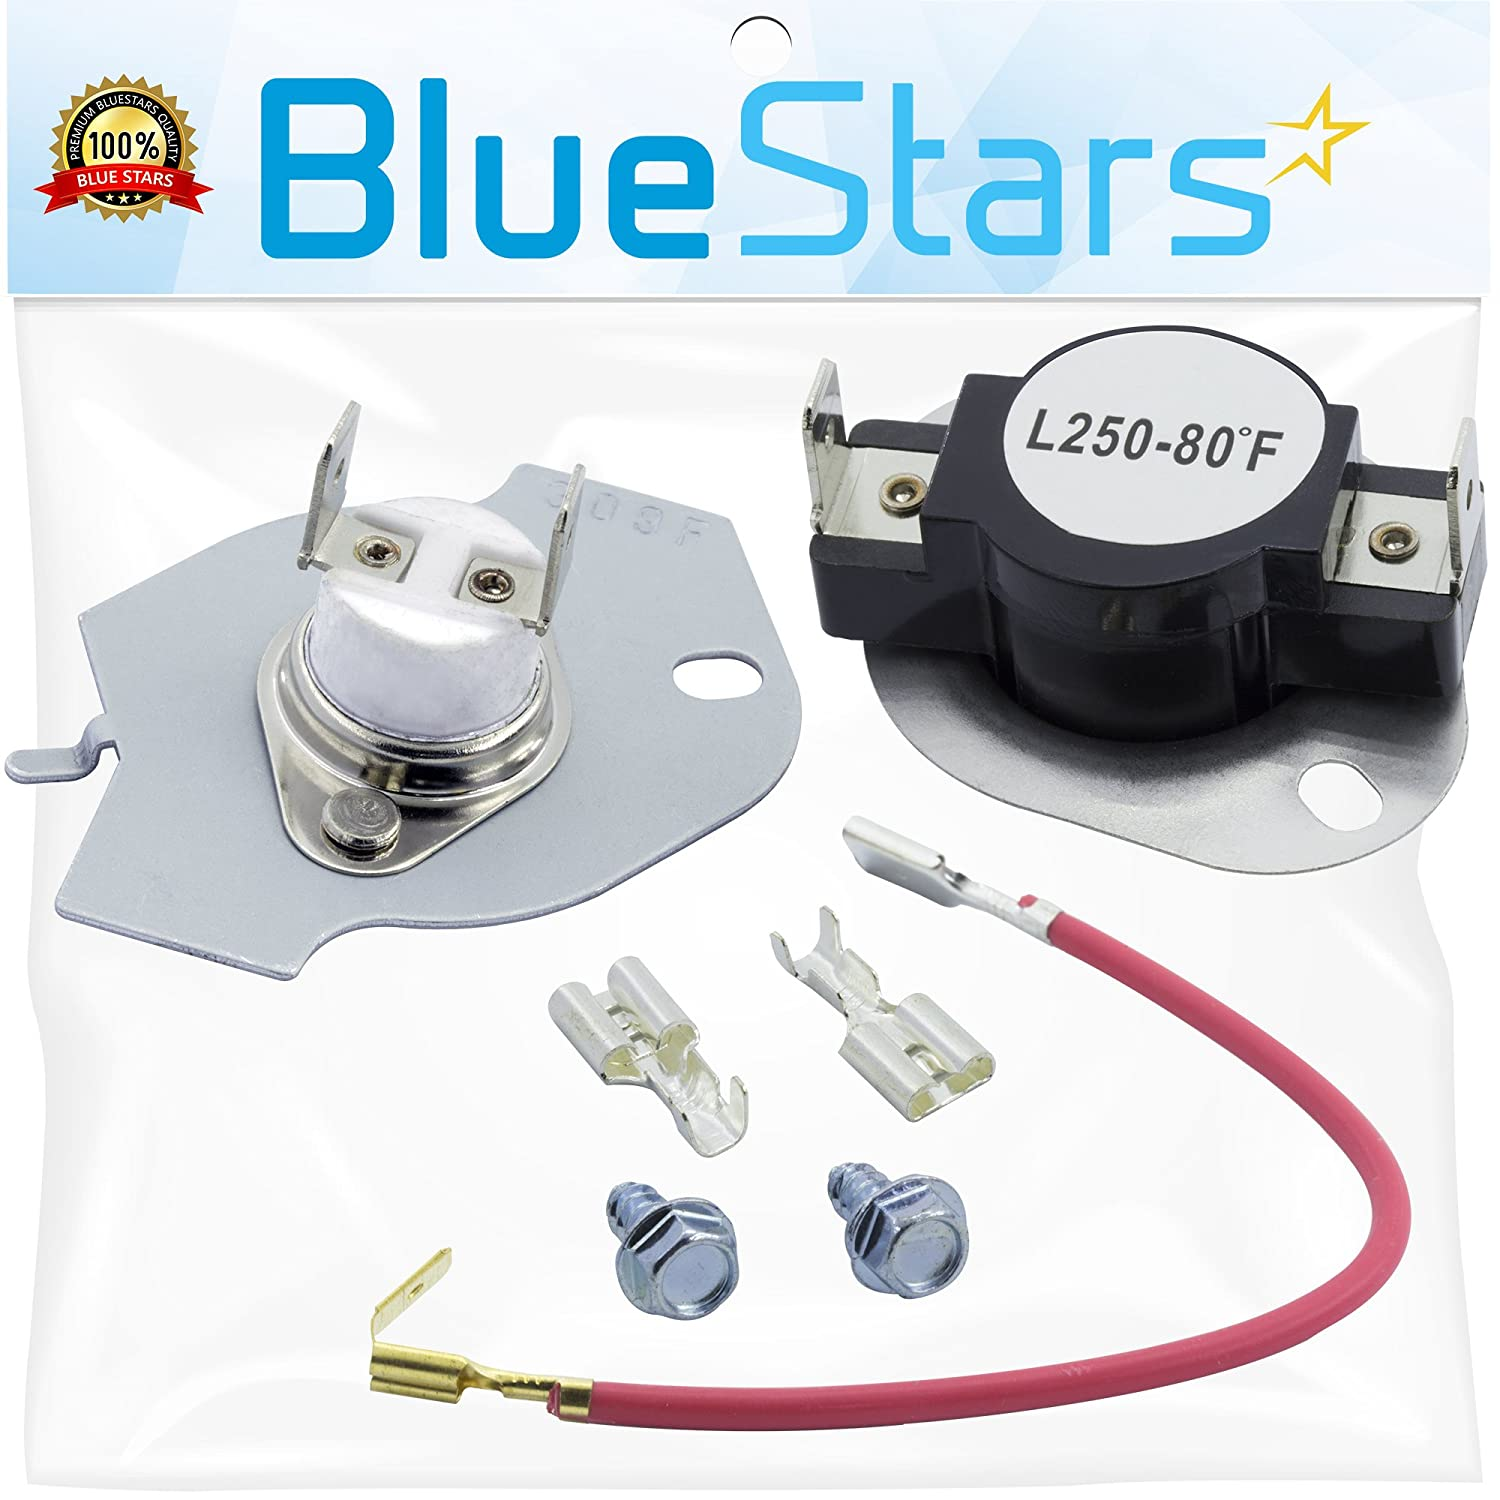 Amazon.com: 279816 Dryer Thermostat Kit Replacement by Blue Stars - Exact  Fit for Whirlpool & Kenmore Dryer - Simple Instructions Included - Replaces  ...